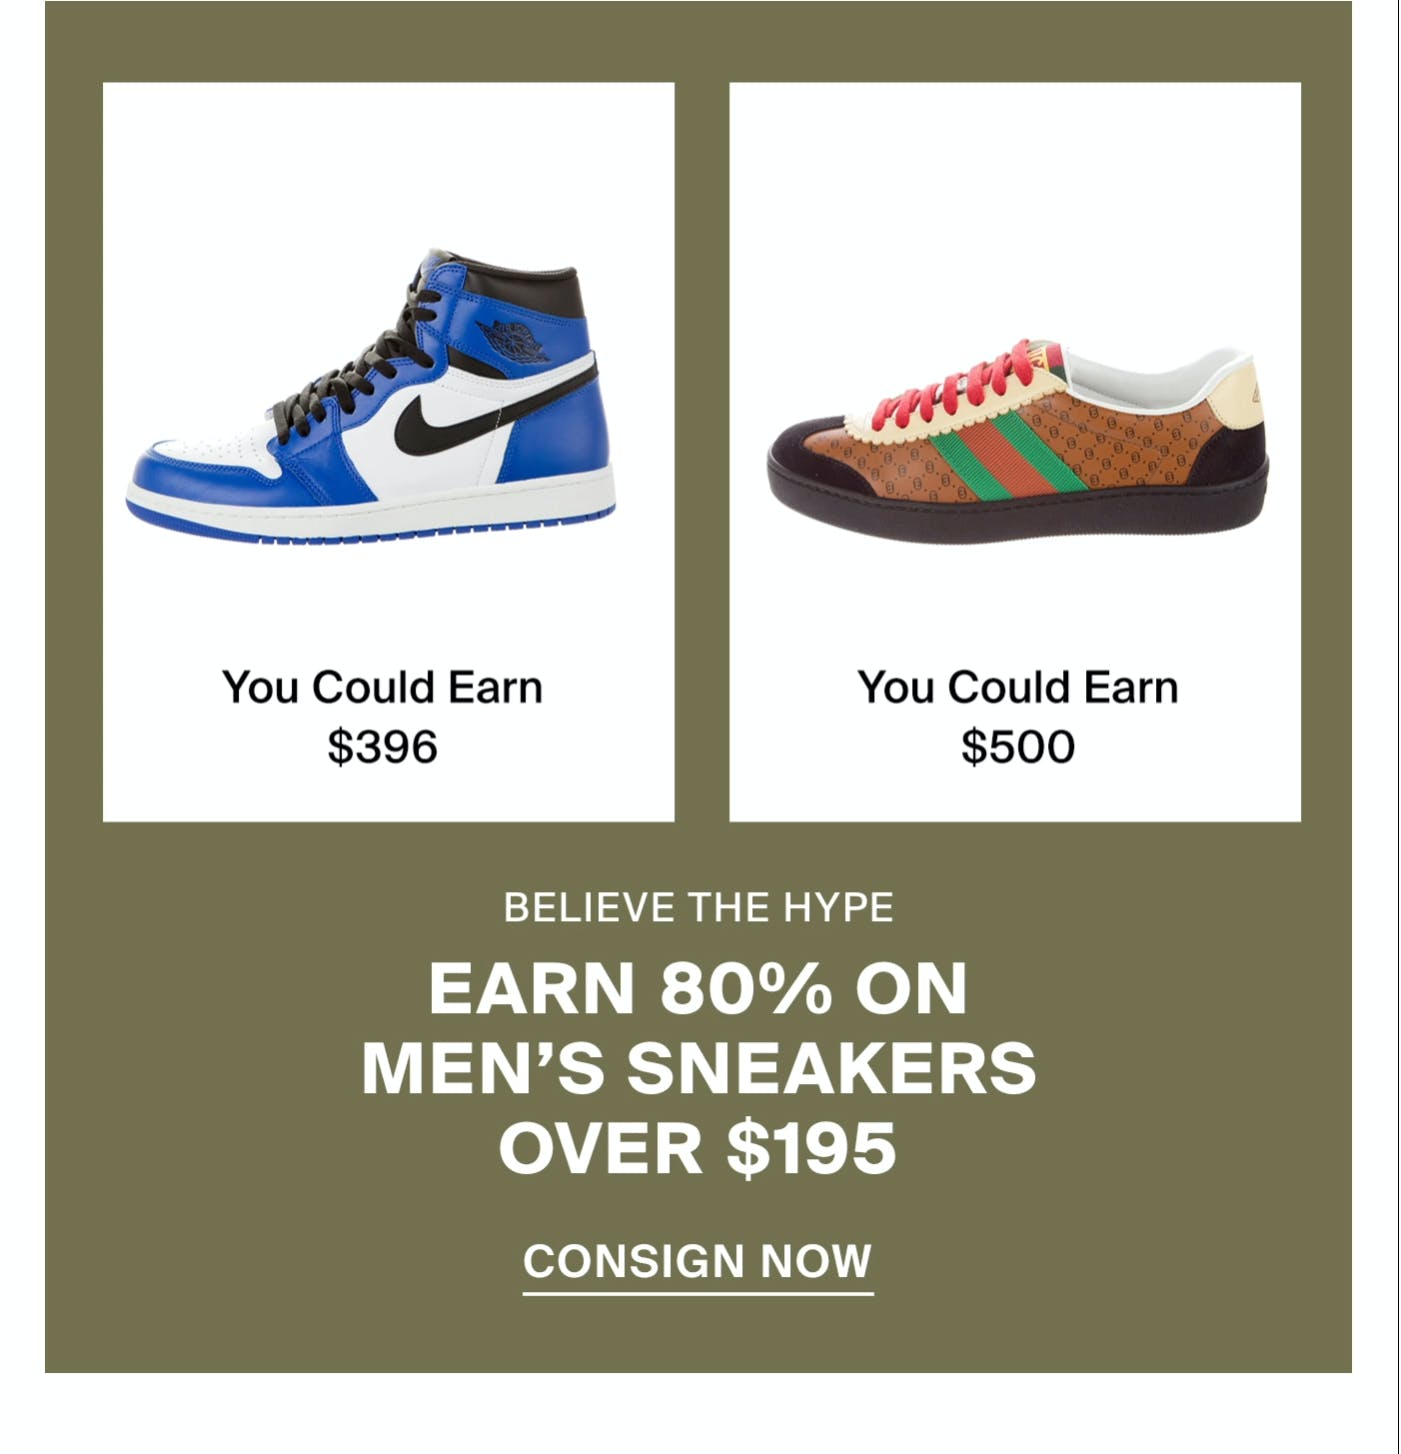 Earn 80% on men's sneakers over $195. Consign Now